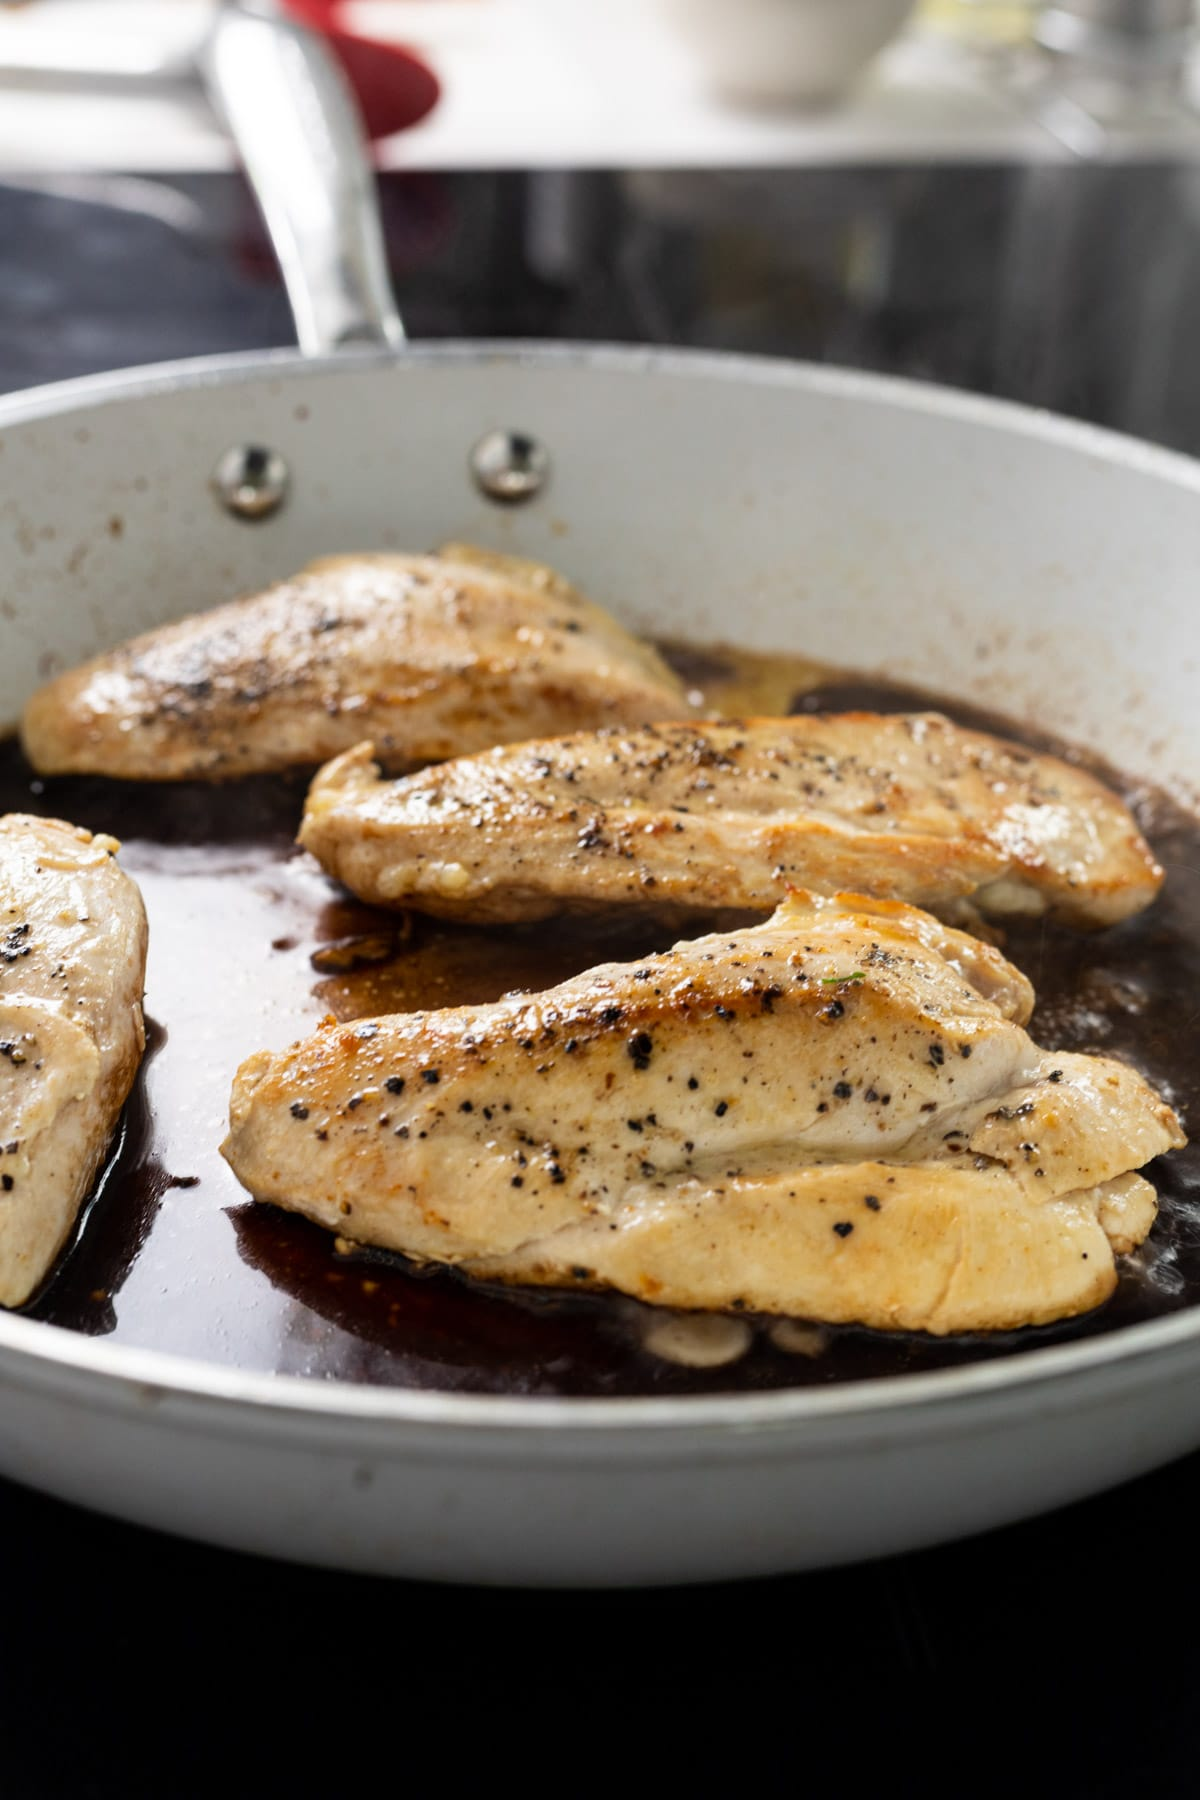 Chicken breasts cooking in a skillet with balsamic vinegar.